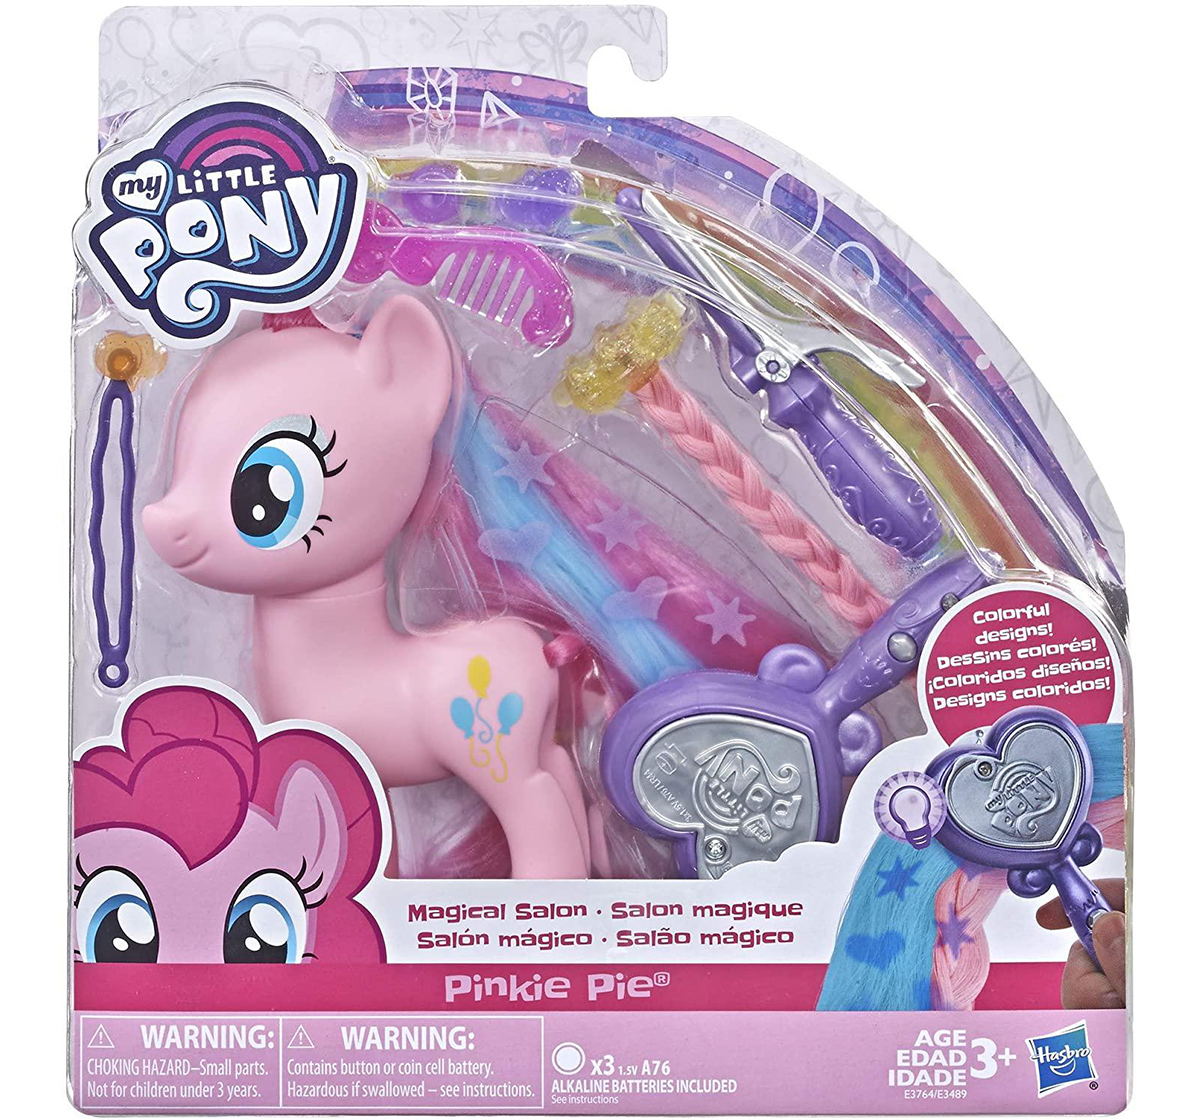 My Little Pony | My Little Pony Toy Magical Salon Hair-Styling Fashion Pony With Accessories Assorted Collectible for Girls age 3Y+